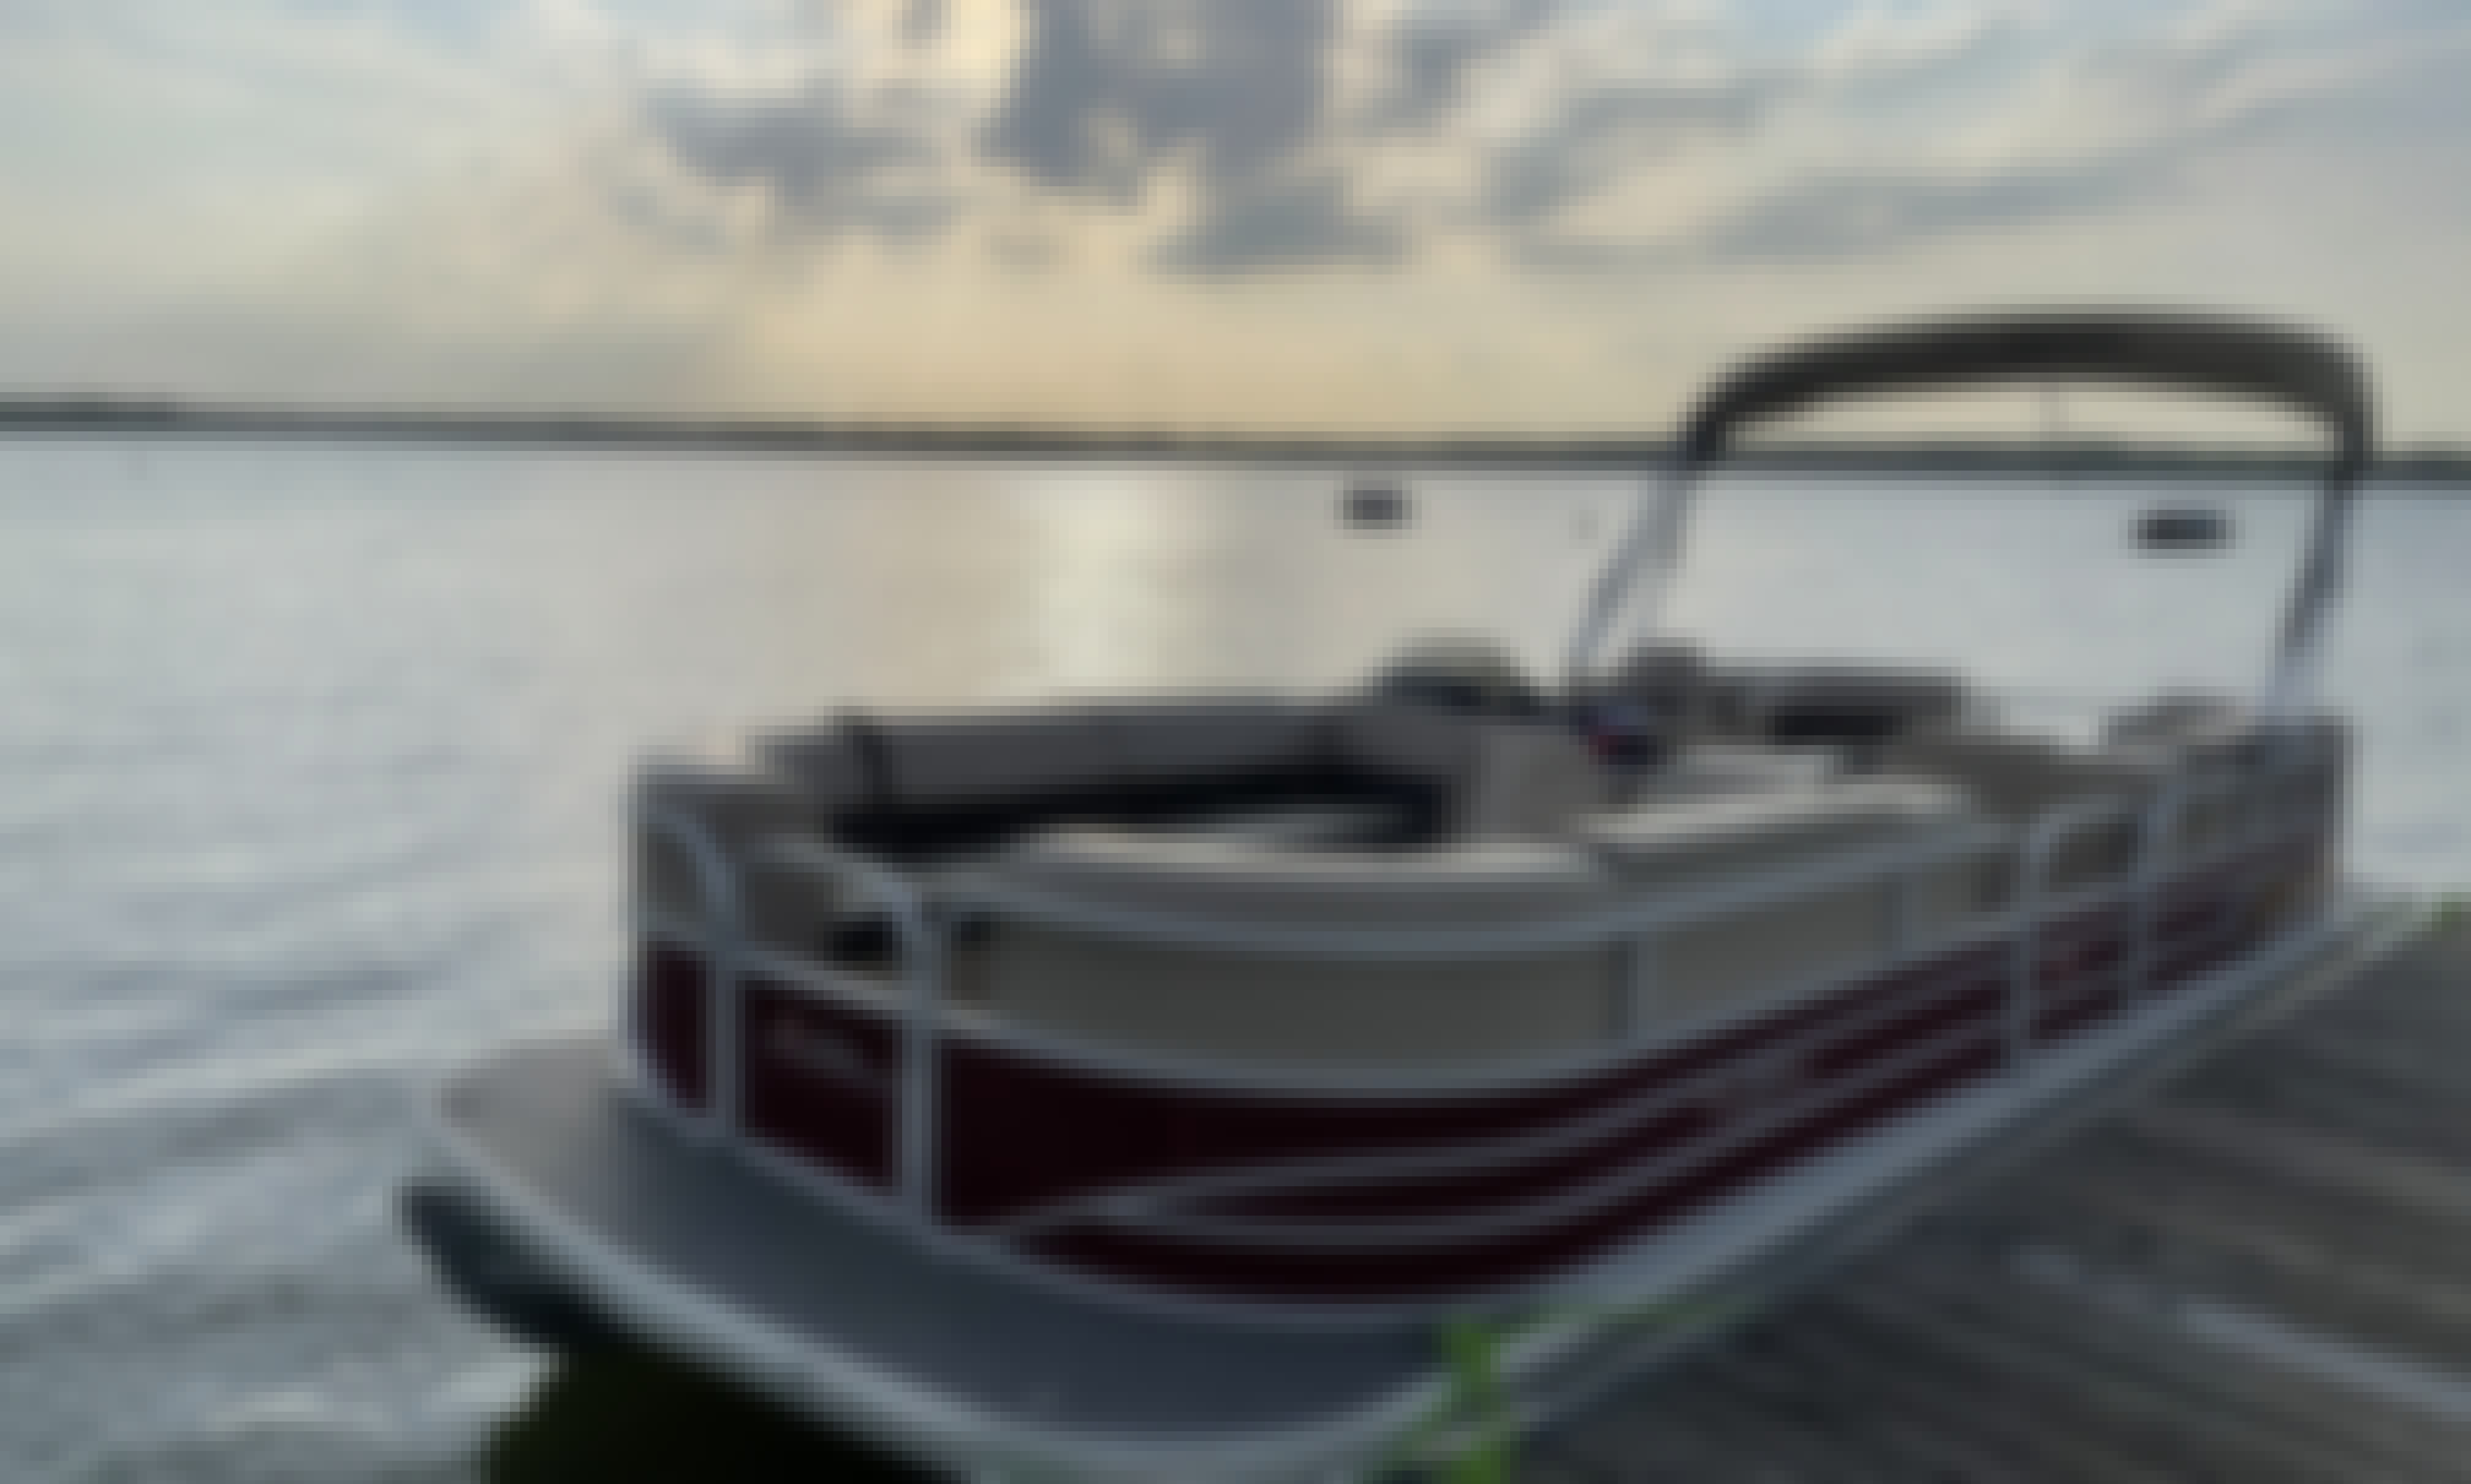 Sun Tracker 24' Pontoon Boat for Rent on Eagle Mountain Lake